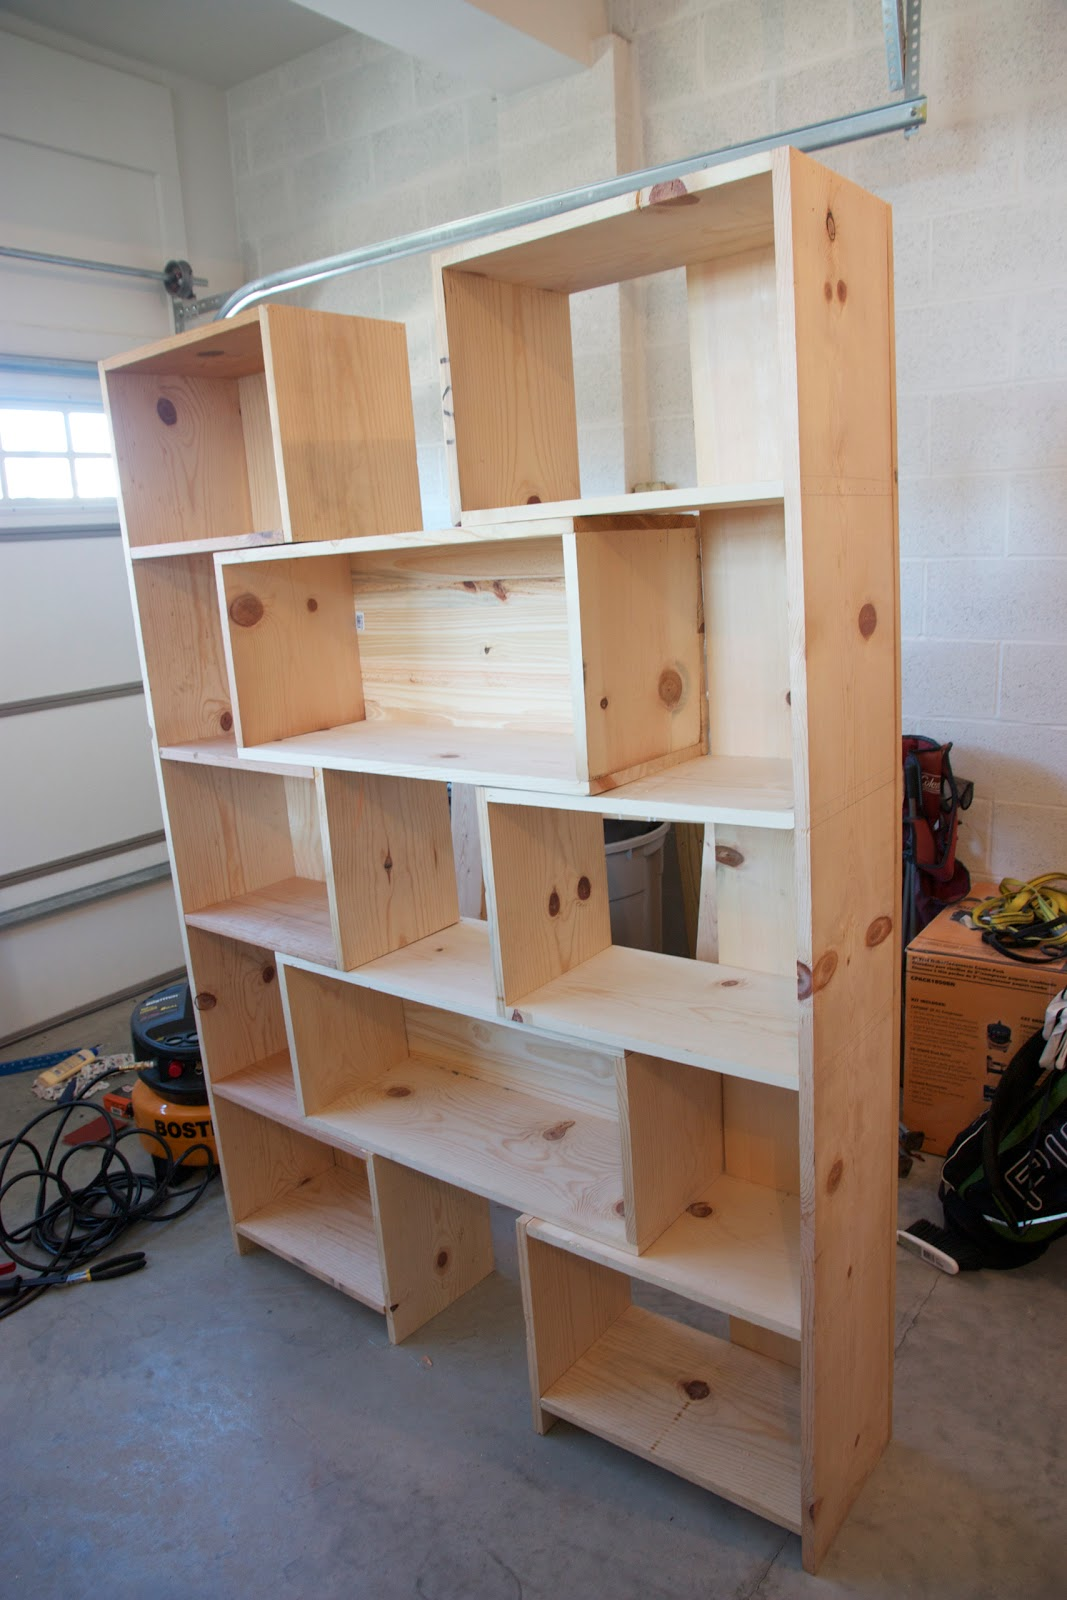 Knock-off Crate and Barrel Bookcase - Done! | Simply Weekends